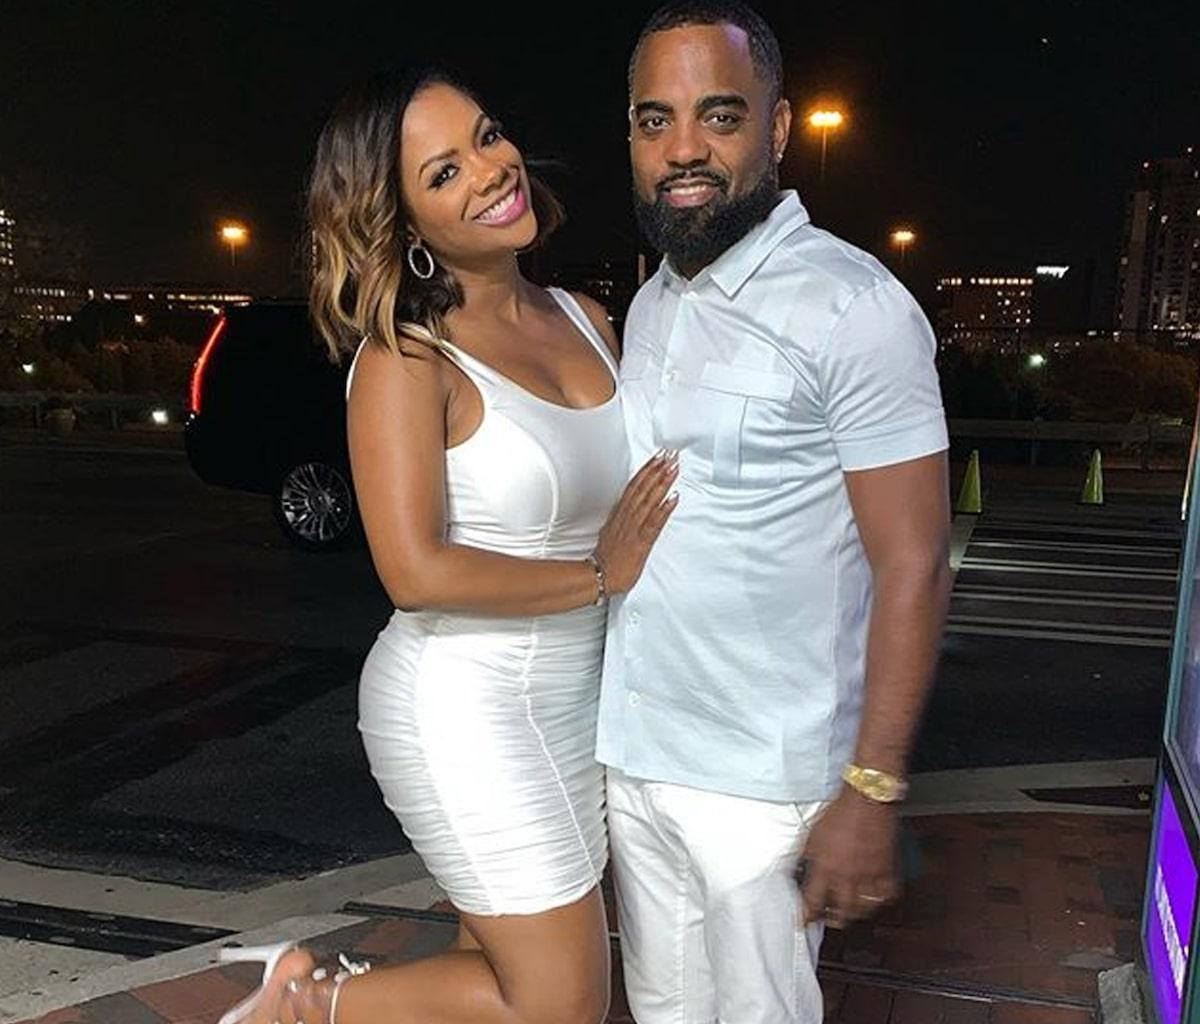 Kandi Burruss Shows Off Her Jaw-Dropping New Look And Fans Are Mesmerized - See Her Photo Here